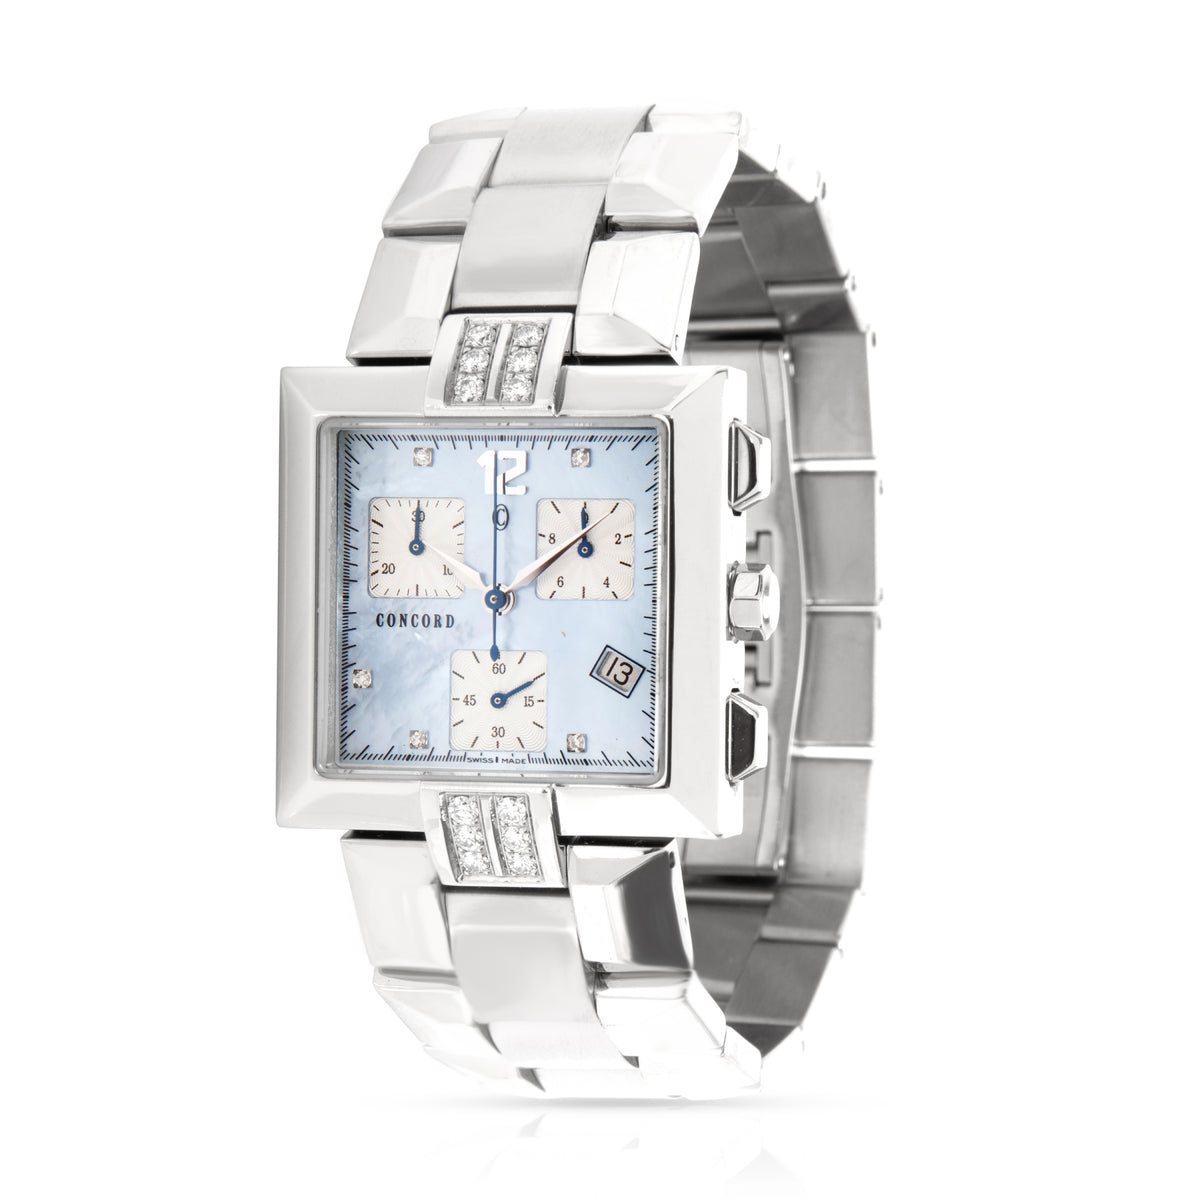 Concord La Scala 14 H1 1371 S Unisex Watch in  Stainless Steel